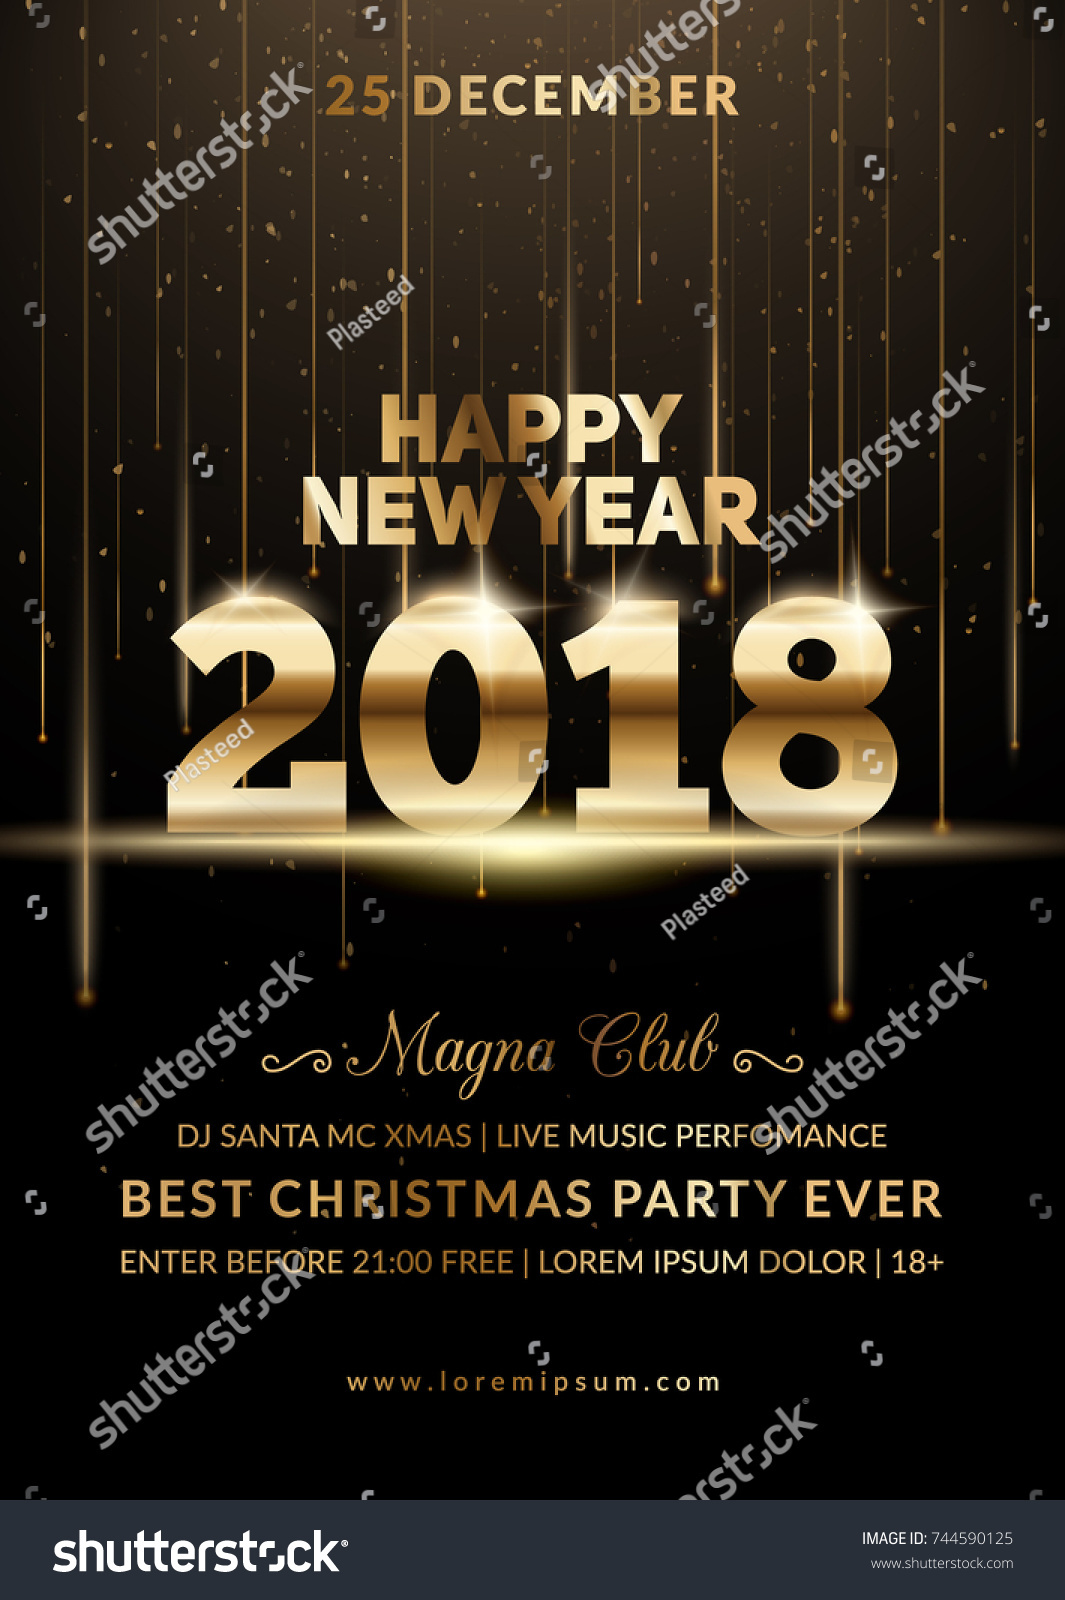 new year 2018 party club poster modern design for a holiday party flyer eps10